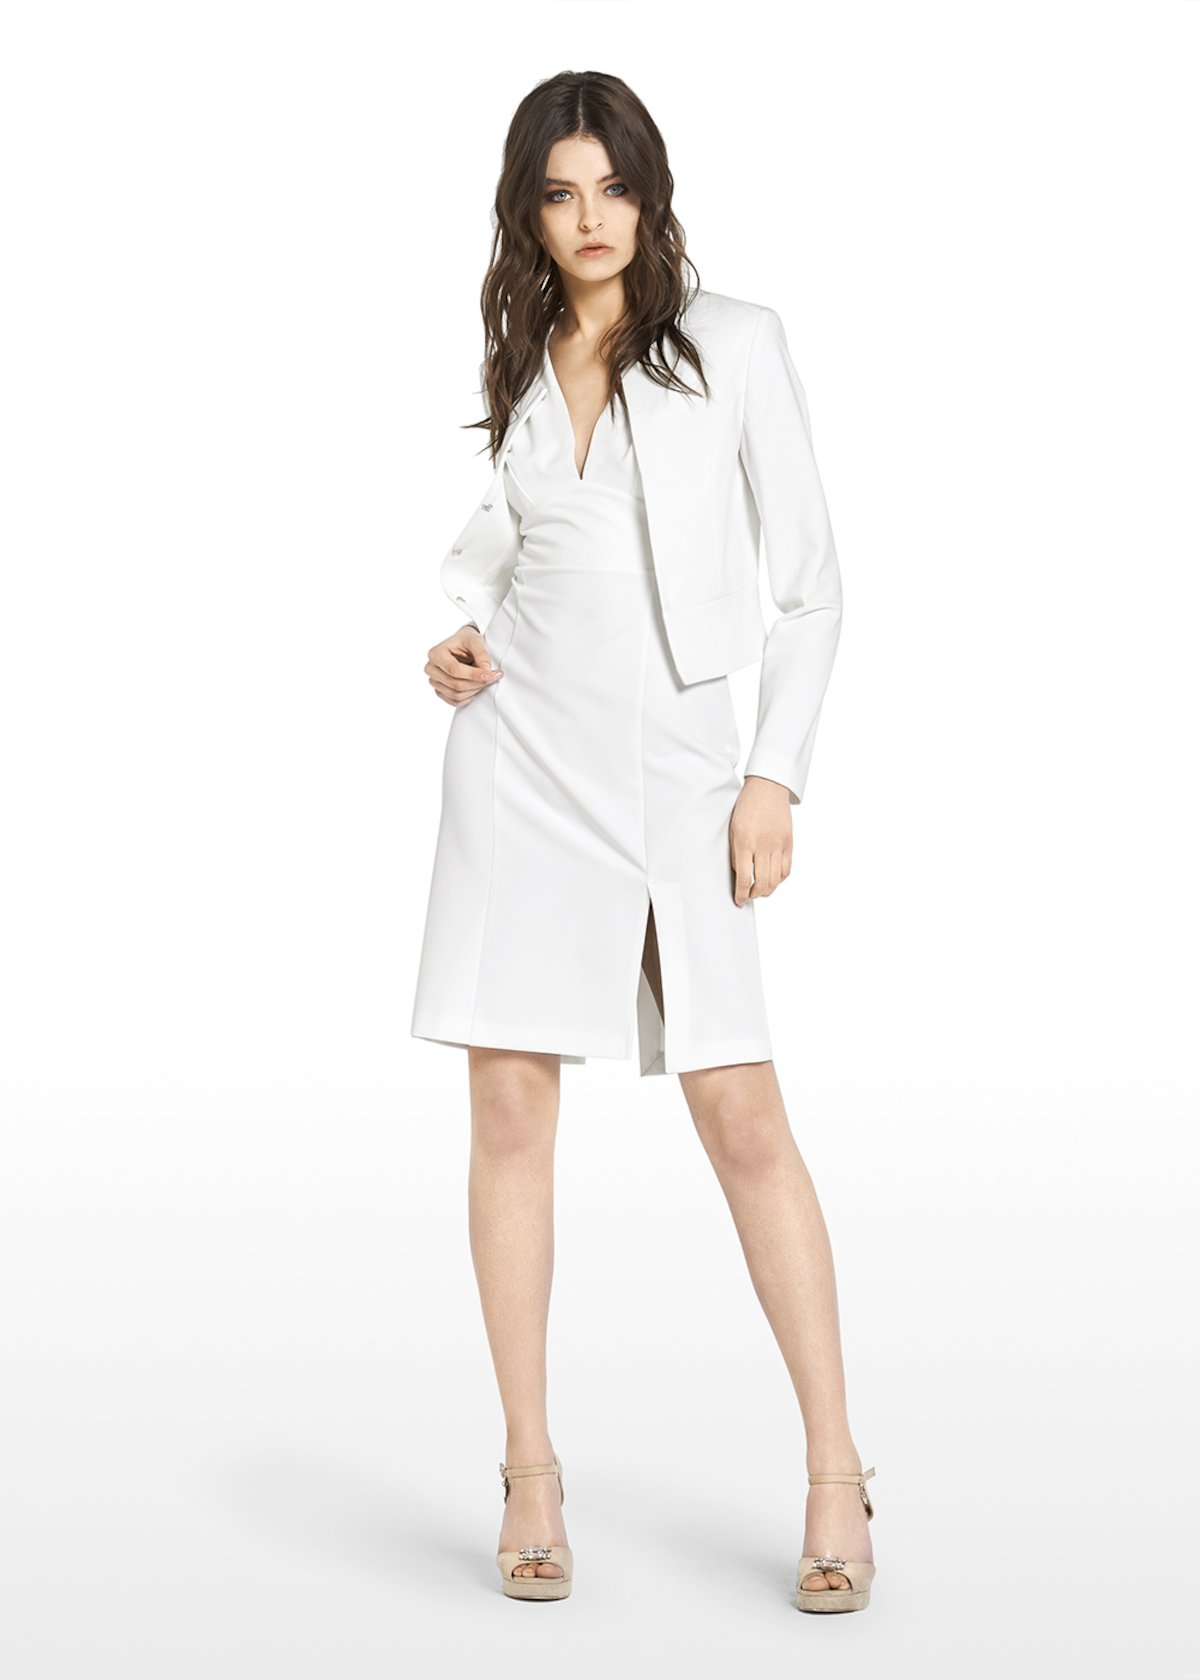 Carter shrug technical fabric - White - Woman - Category image